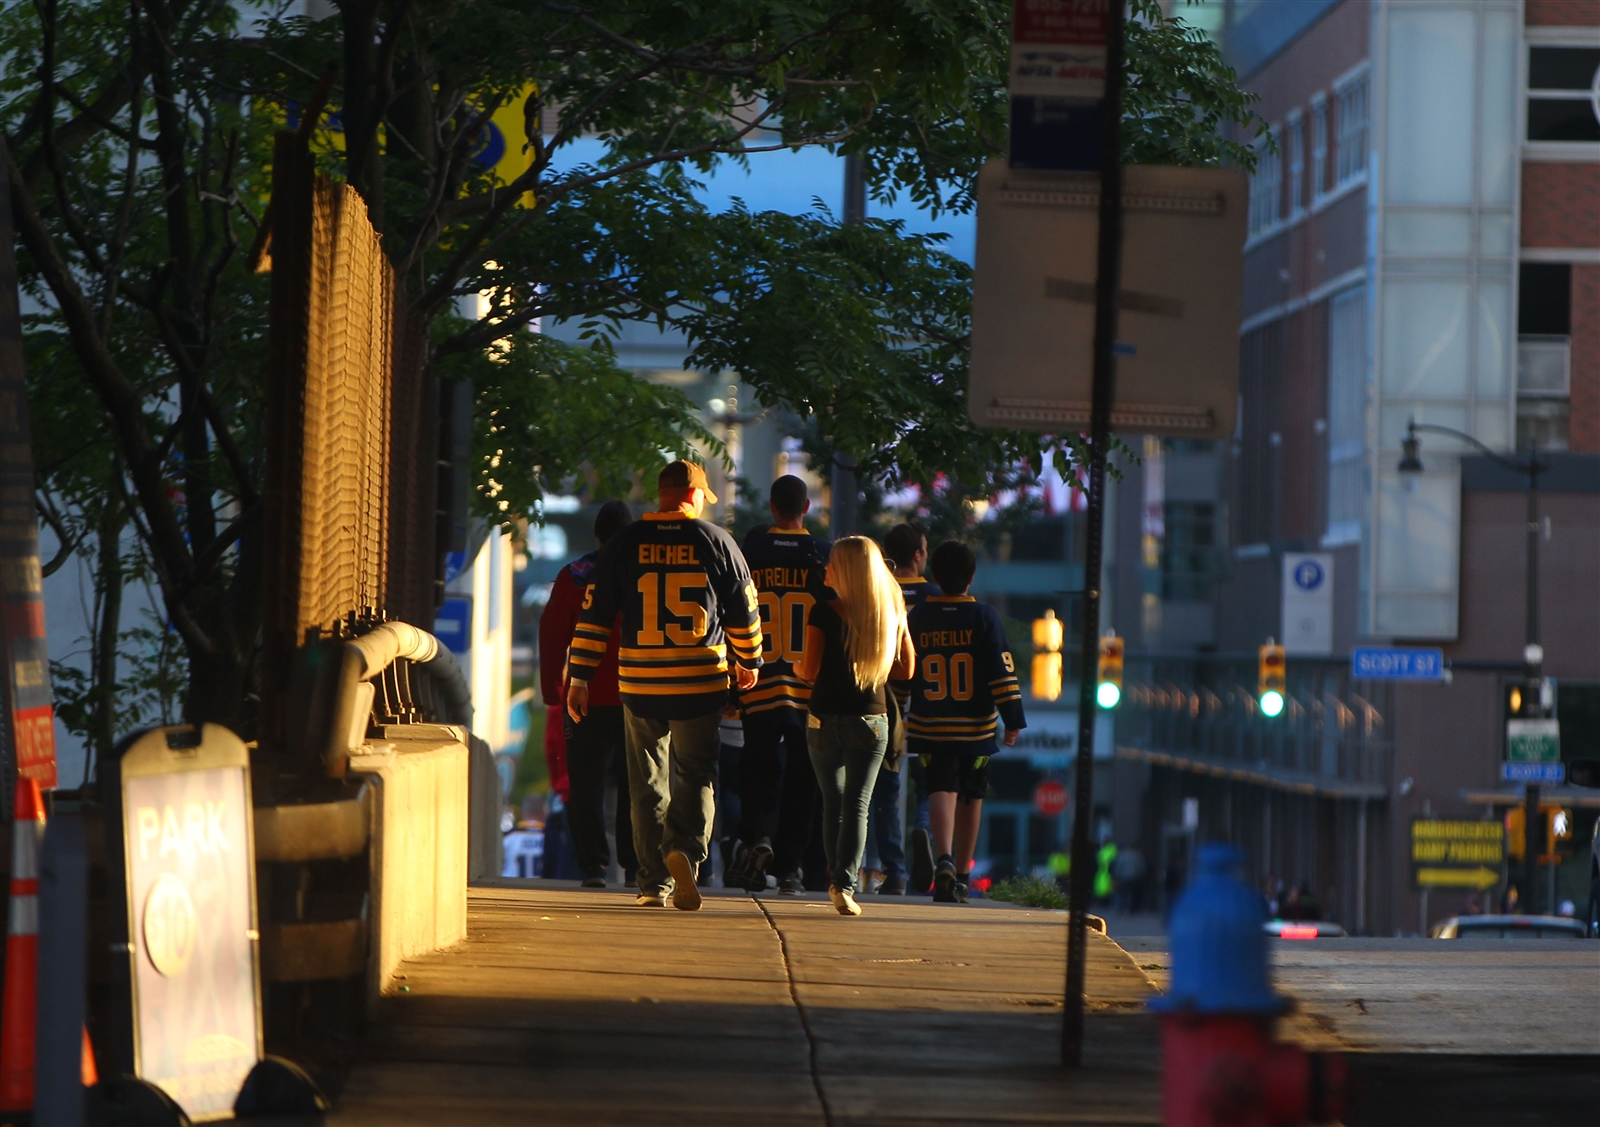 Sabres fans walk down Washington Street to the KeyBank Center for the preseason game between the Ottawa Senators and the Buffalo Sabres on Tuesday, Sept. 27, 2016.